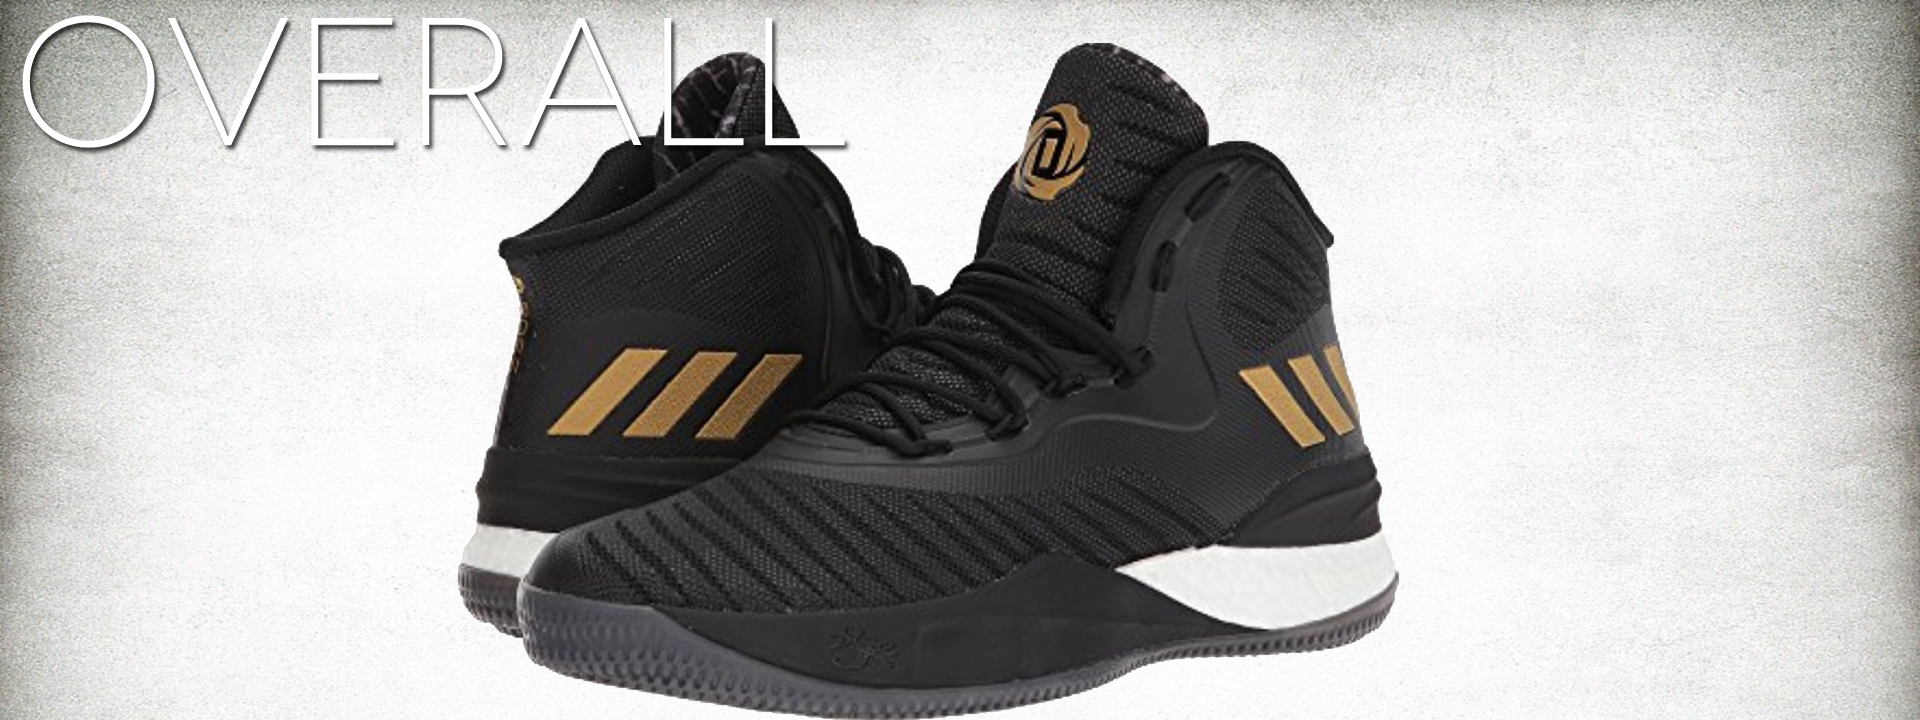 c2185ffcaf431 adidas D Rose 8 Performance Review - WearTesters